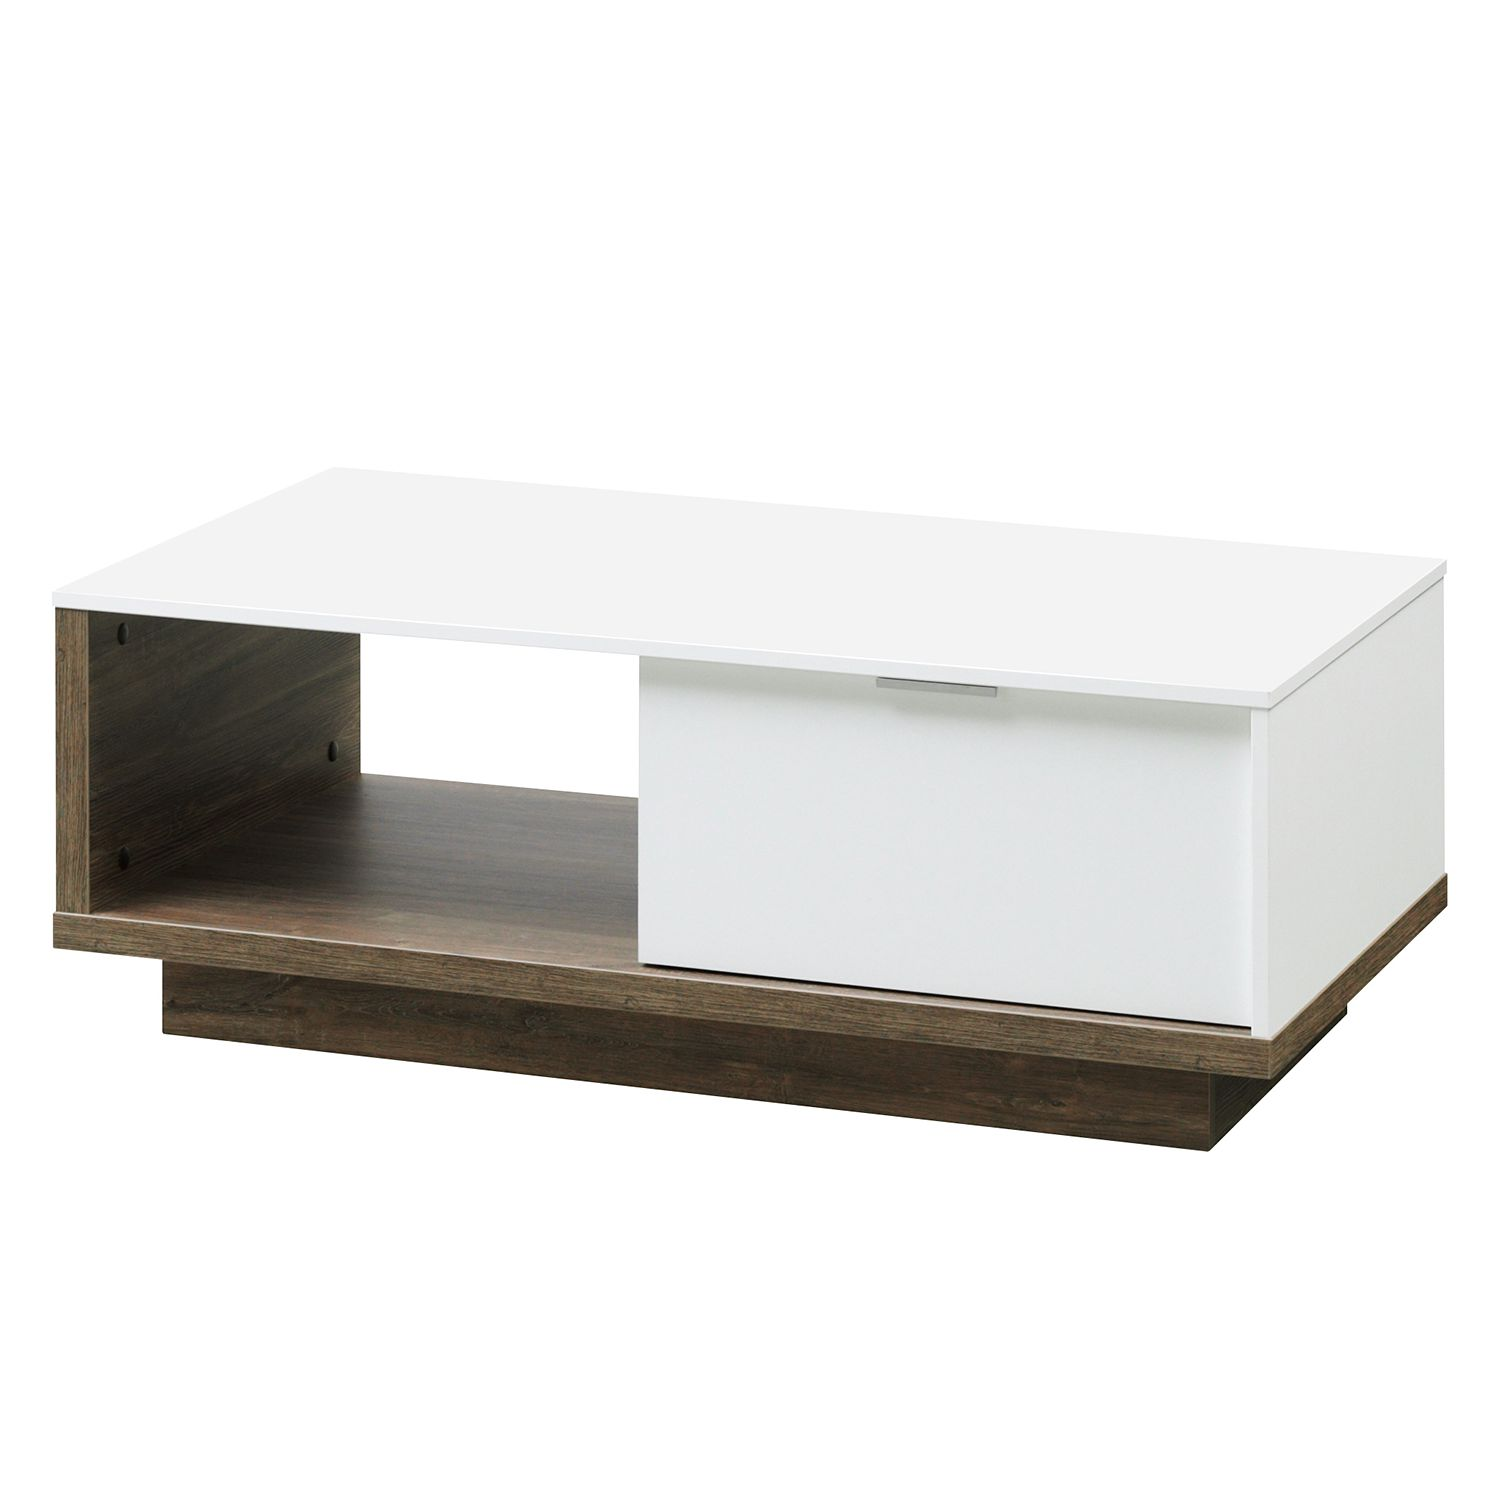 Table basse My Ell - Blanc / Imitation chêne de Stirling, Cs Schmal